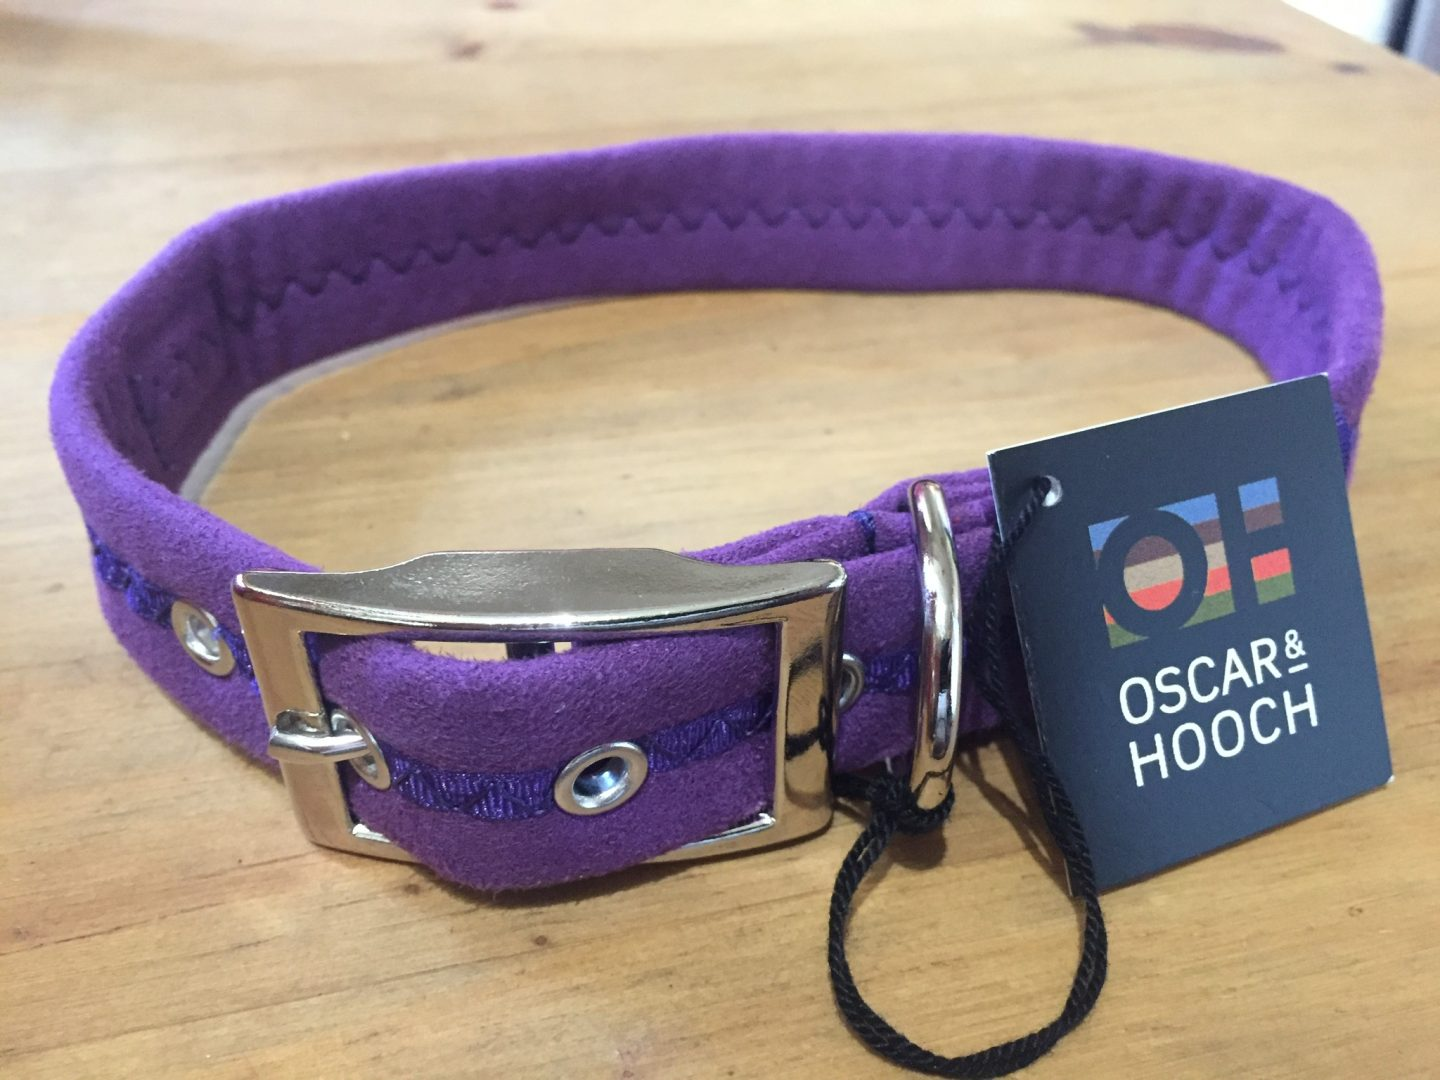 Oscar and Hooch  – Review of collar and lead